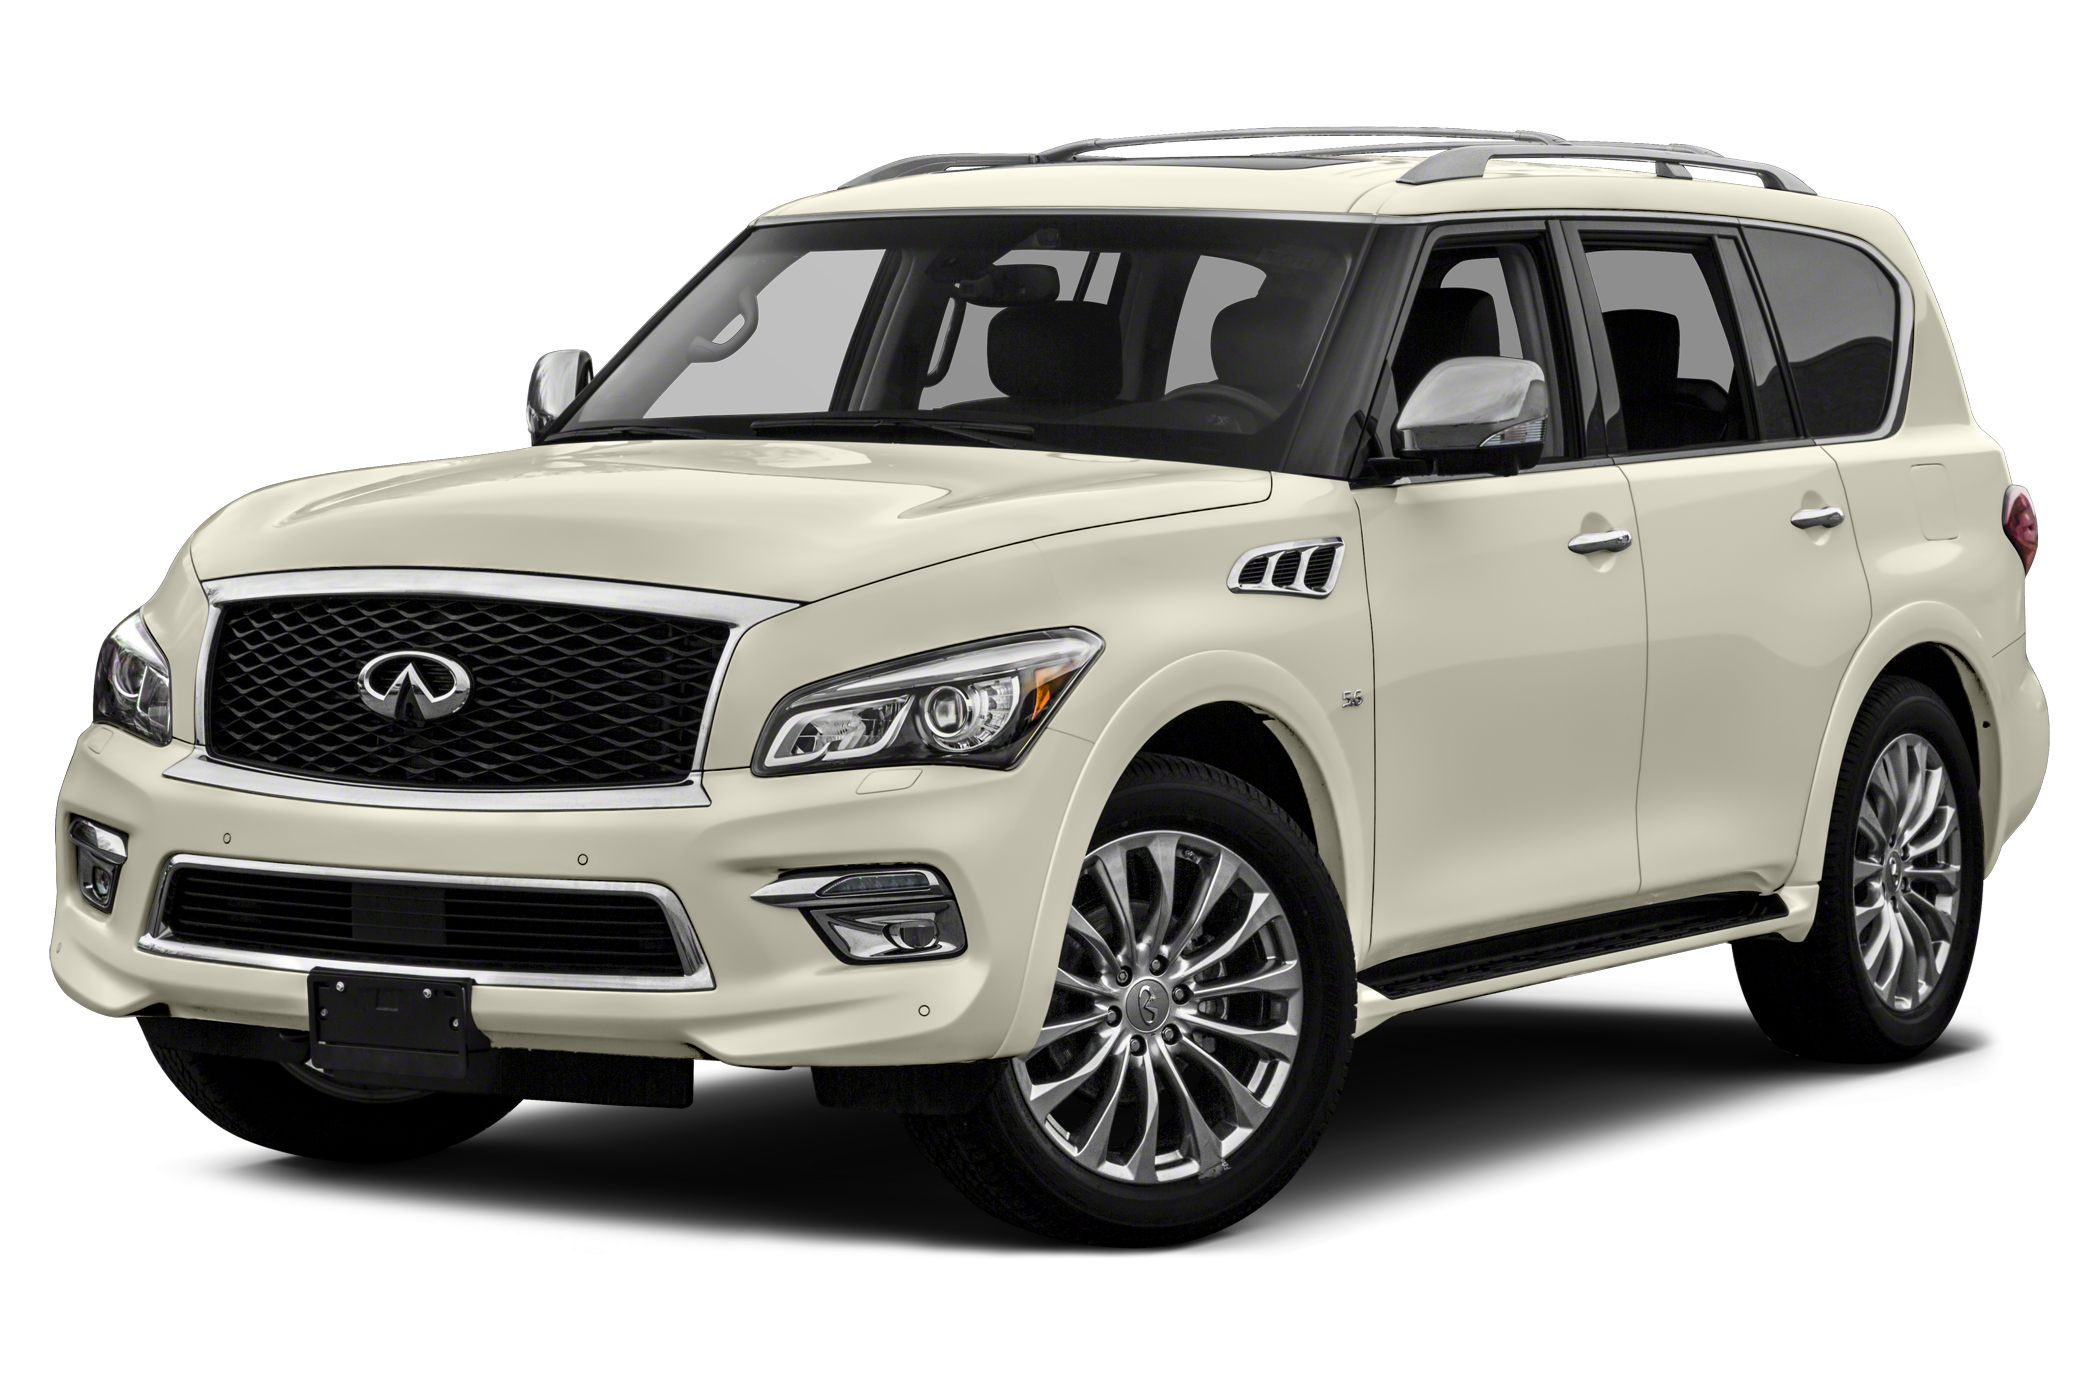 2015 Infiniti QX80 Base Optional equipment includes Carpeted Cargo MatCargo Net  First Aid Kit